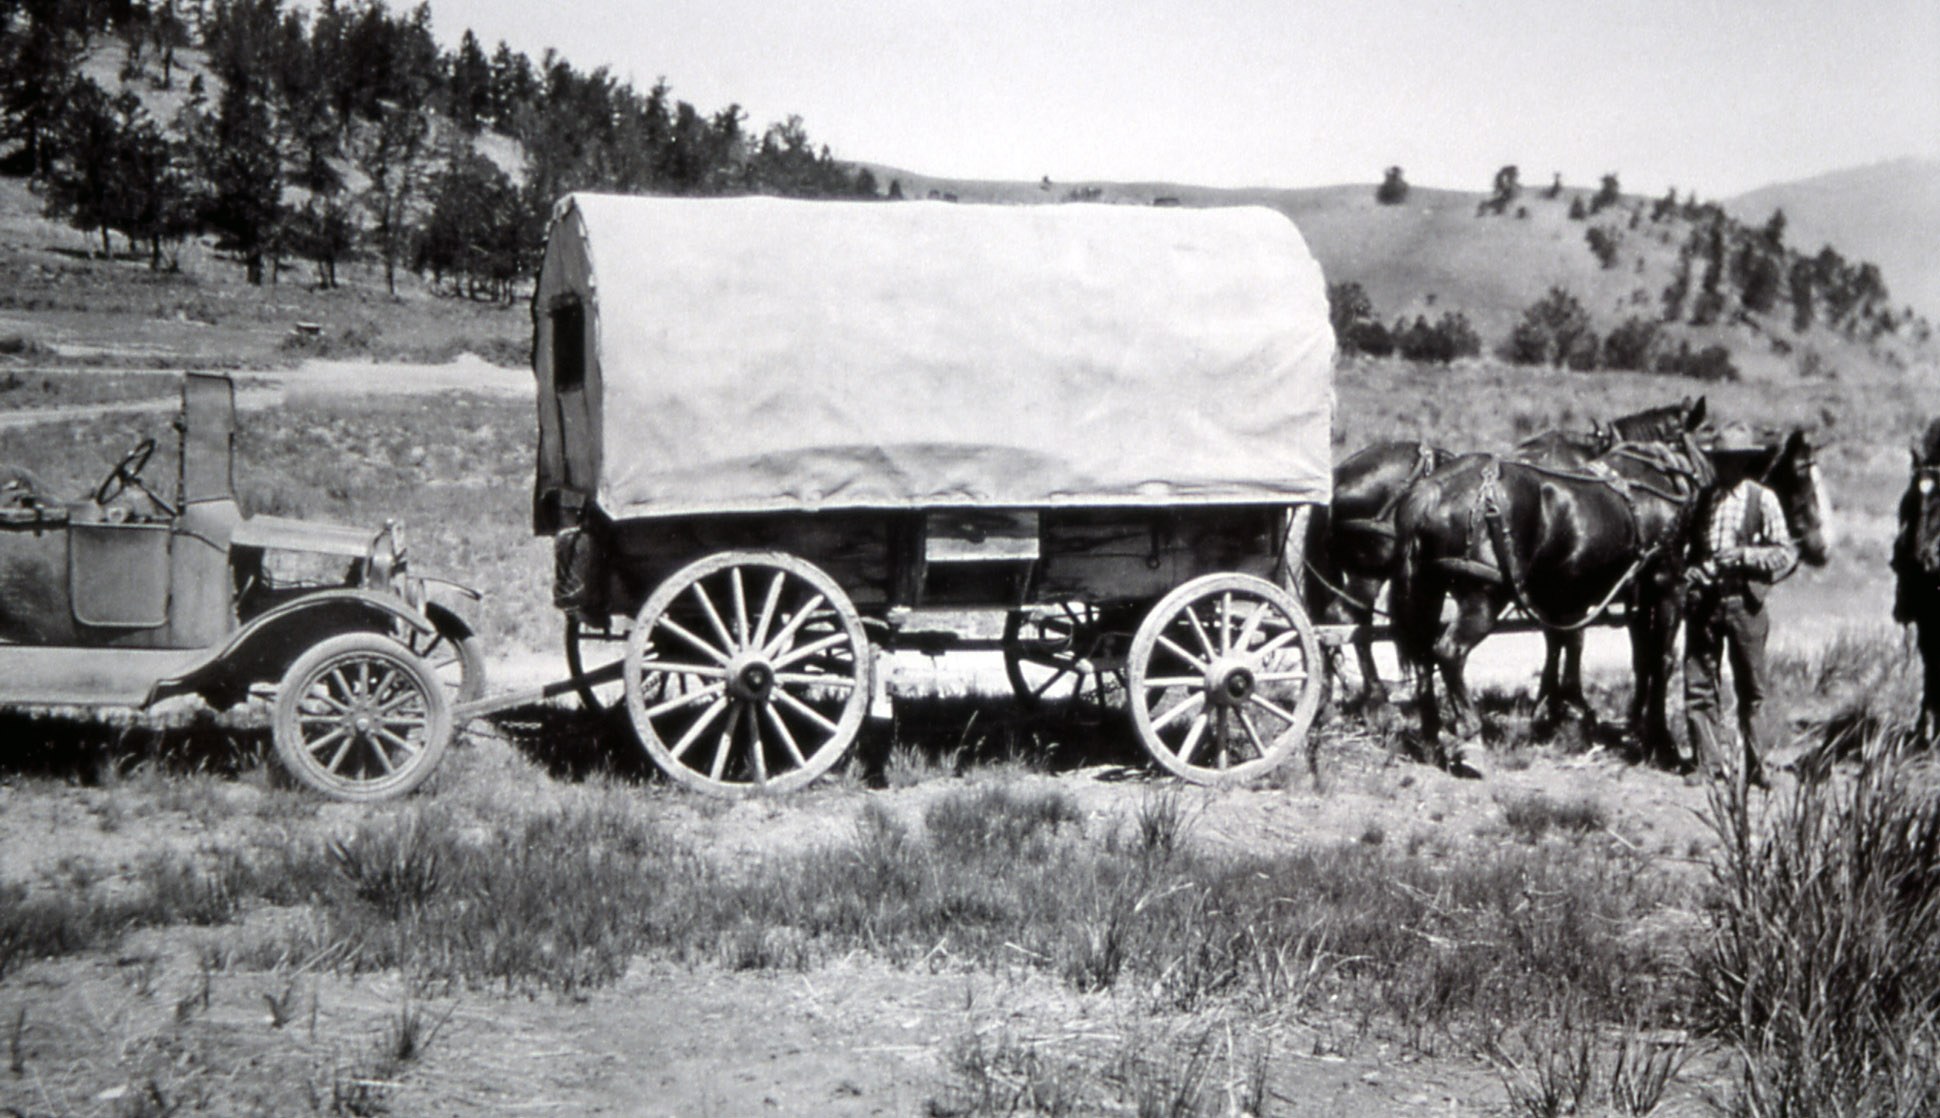 Black White An D Tractor Pulling Wagon : Covered wagon with horses the